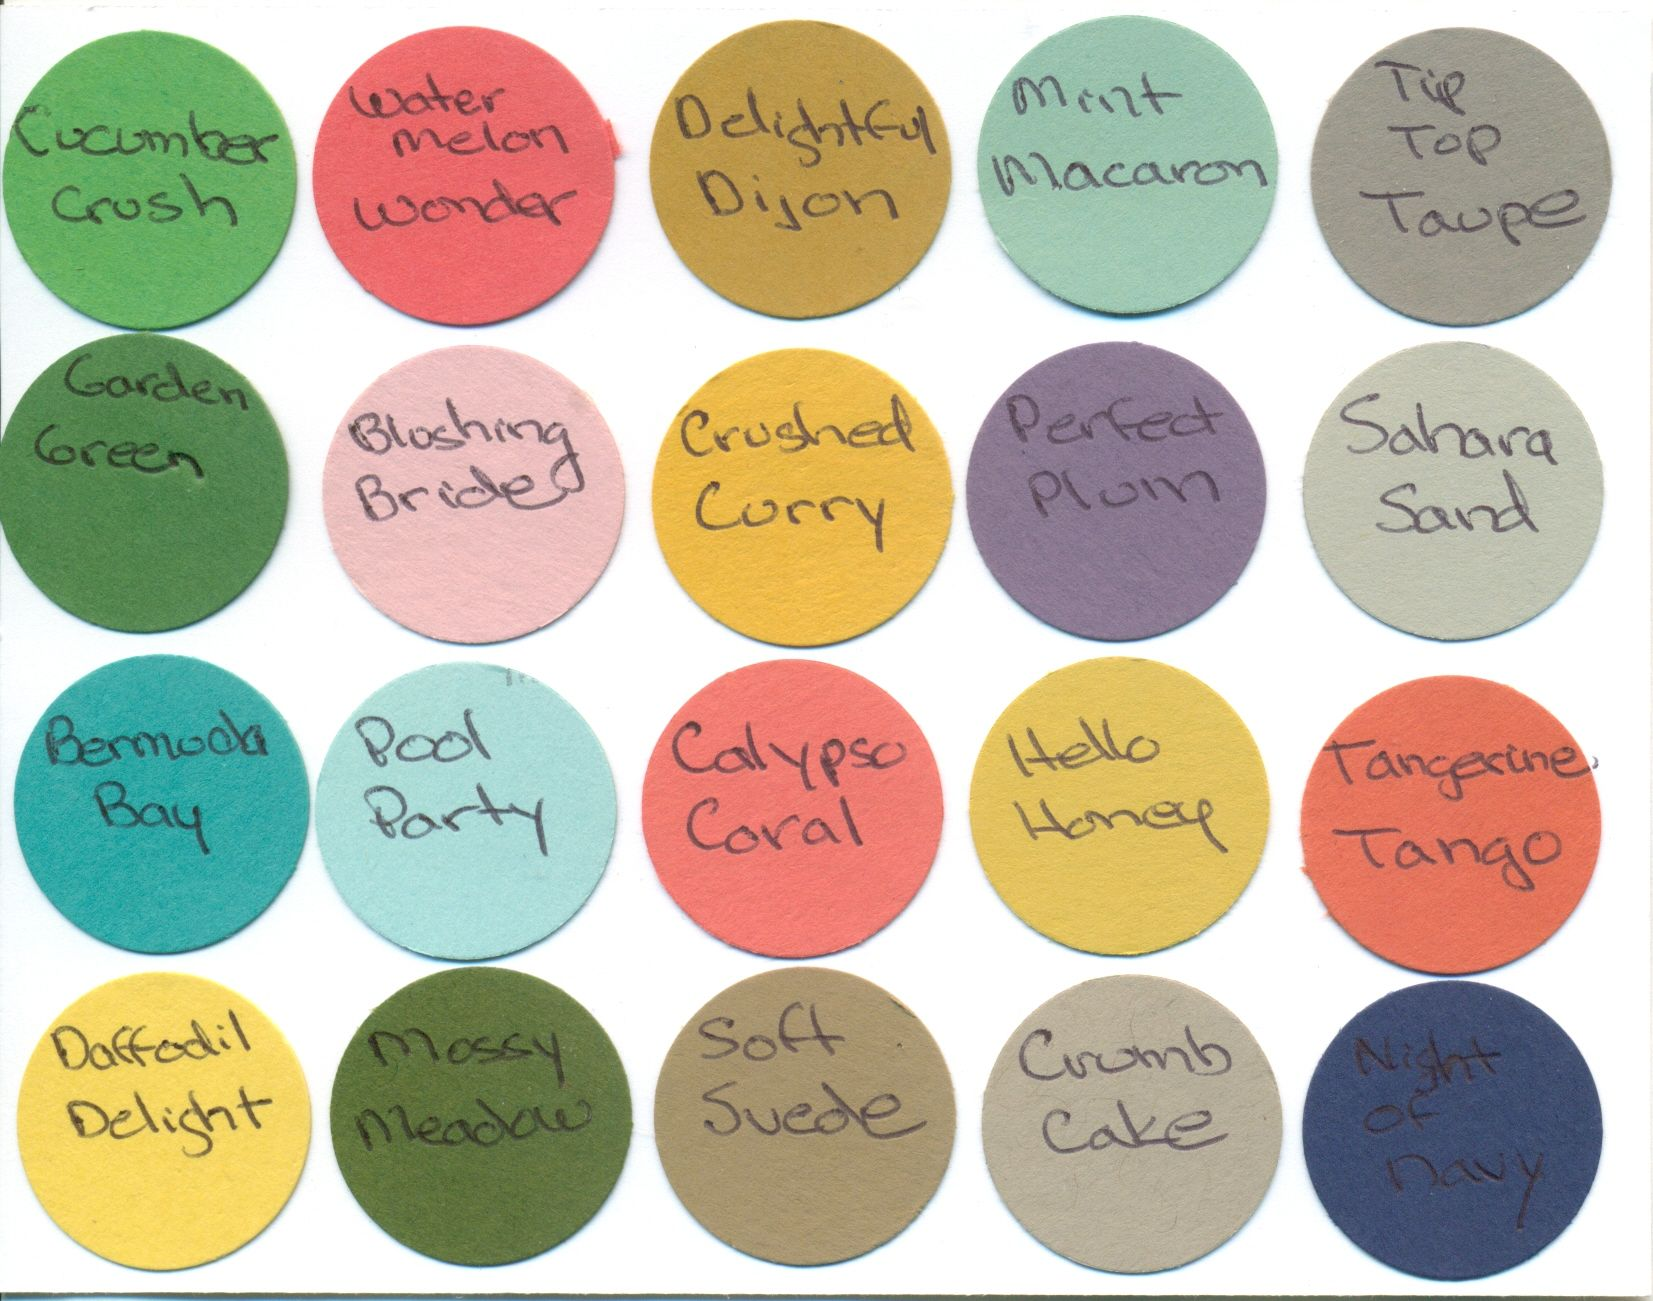 Color Combo new in-colors combo chart. these are the combinations mentioned in